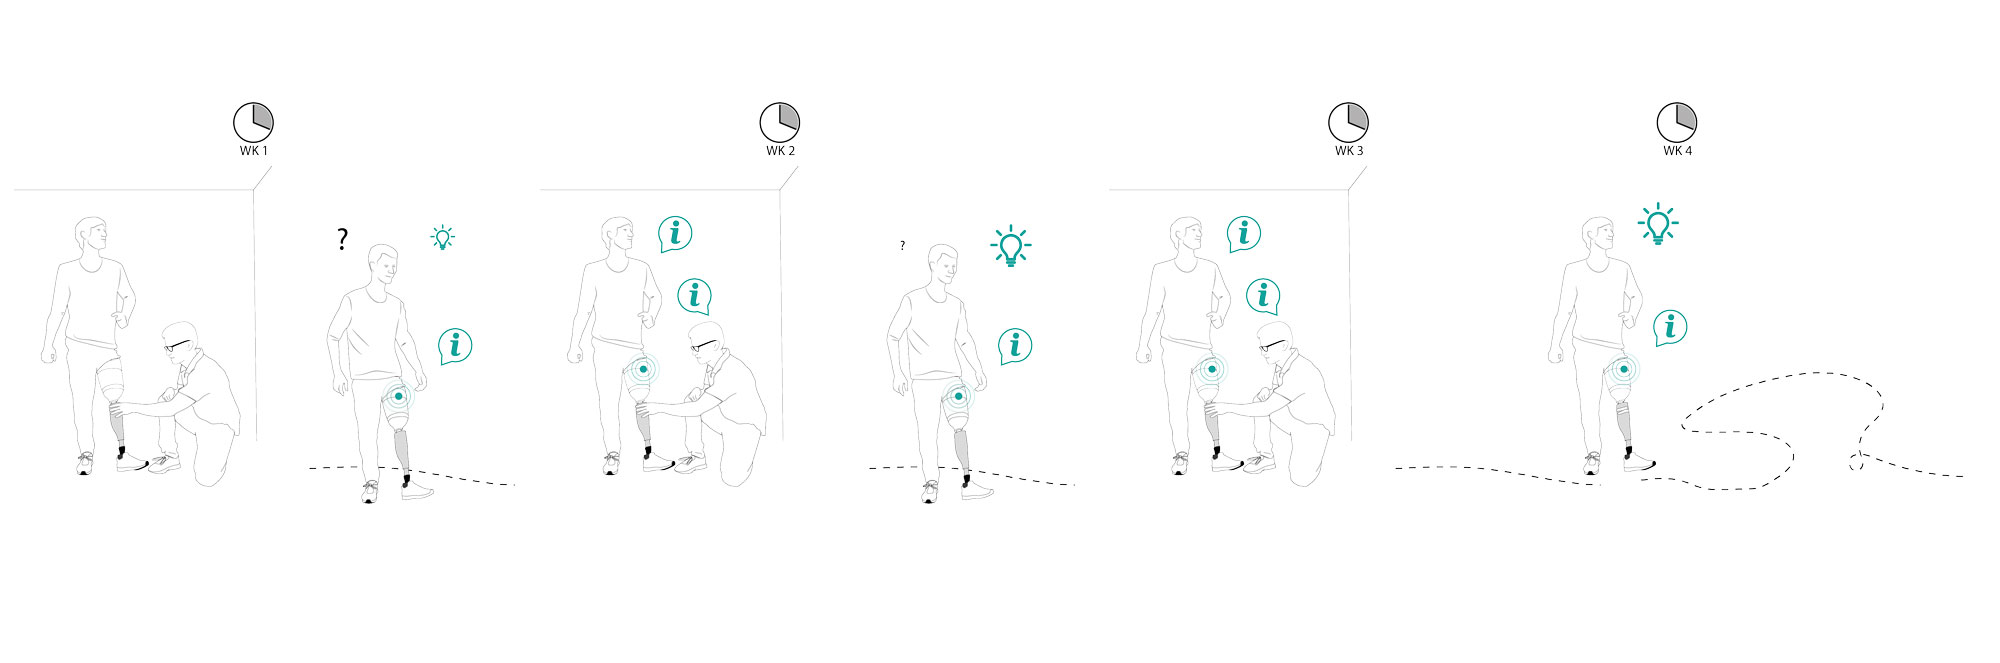 Visualisation of the process of learning to walk with a smart prosthesis.